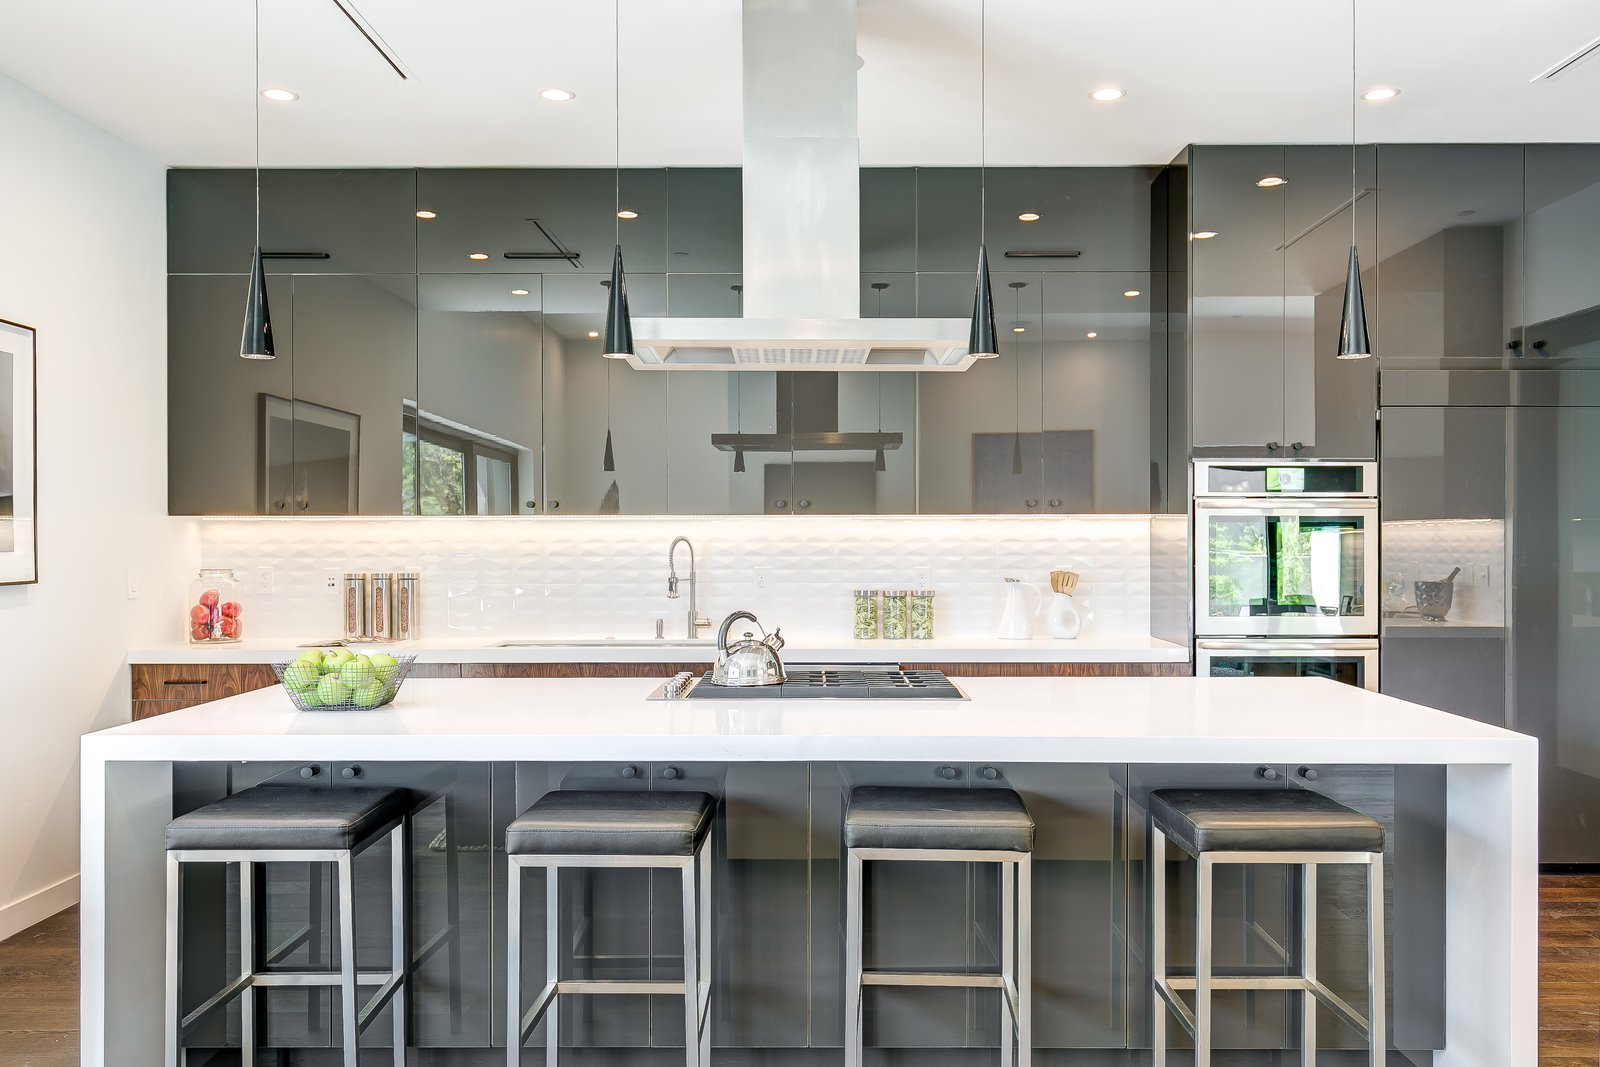 Tagged: Kitchen, Engineered Quartz Counter, Medium Hardwood Floor, Pendant Lighting, Refrigerator, Wall Oven, Ceiling Lighting, Drop In Sink, and Cooktops. 2701 Armacost by Zillow